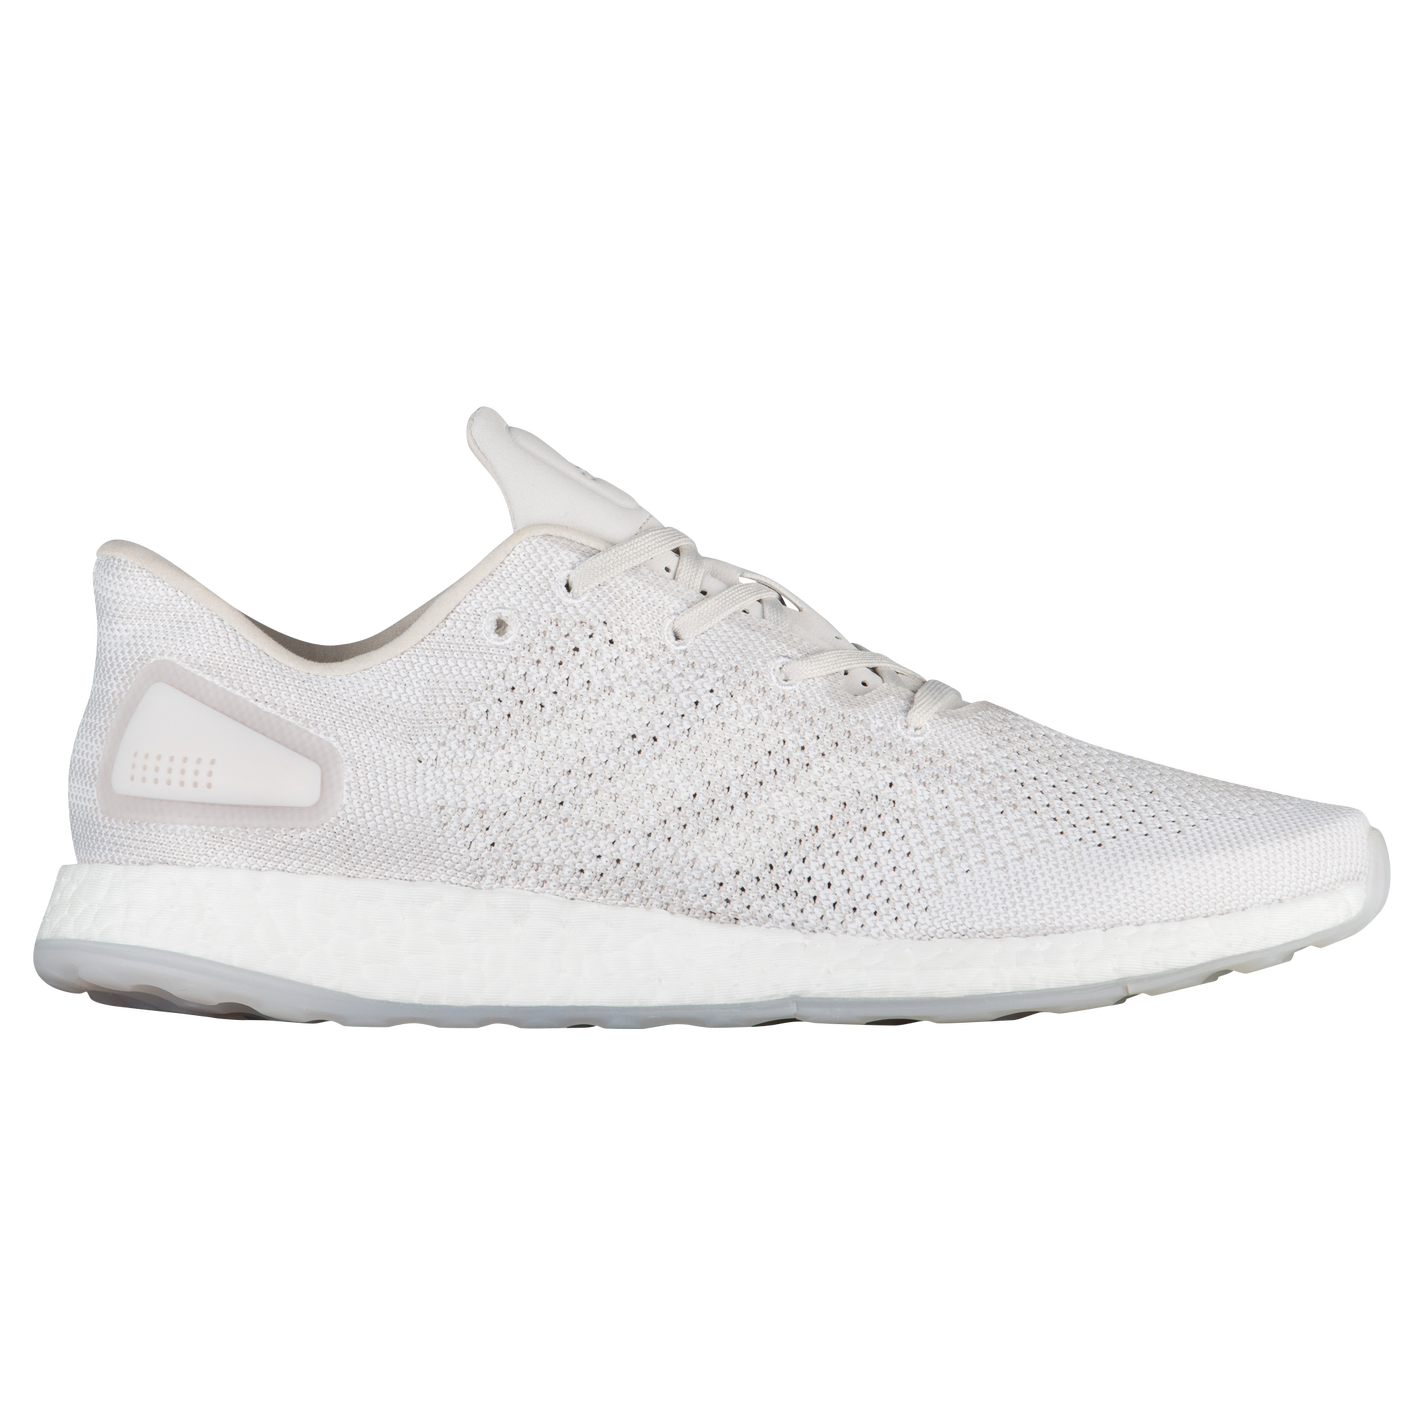 692831b7e64fc adidas Pureboost DPR Climacool - Men s - Running - Shoes - Grey White White